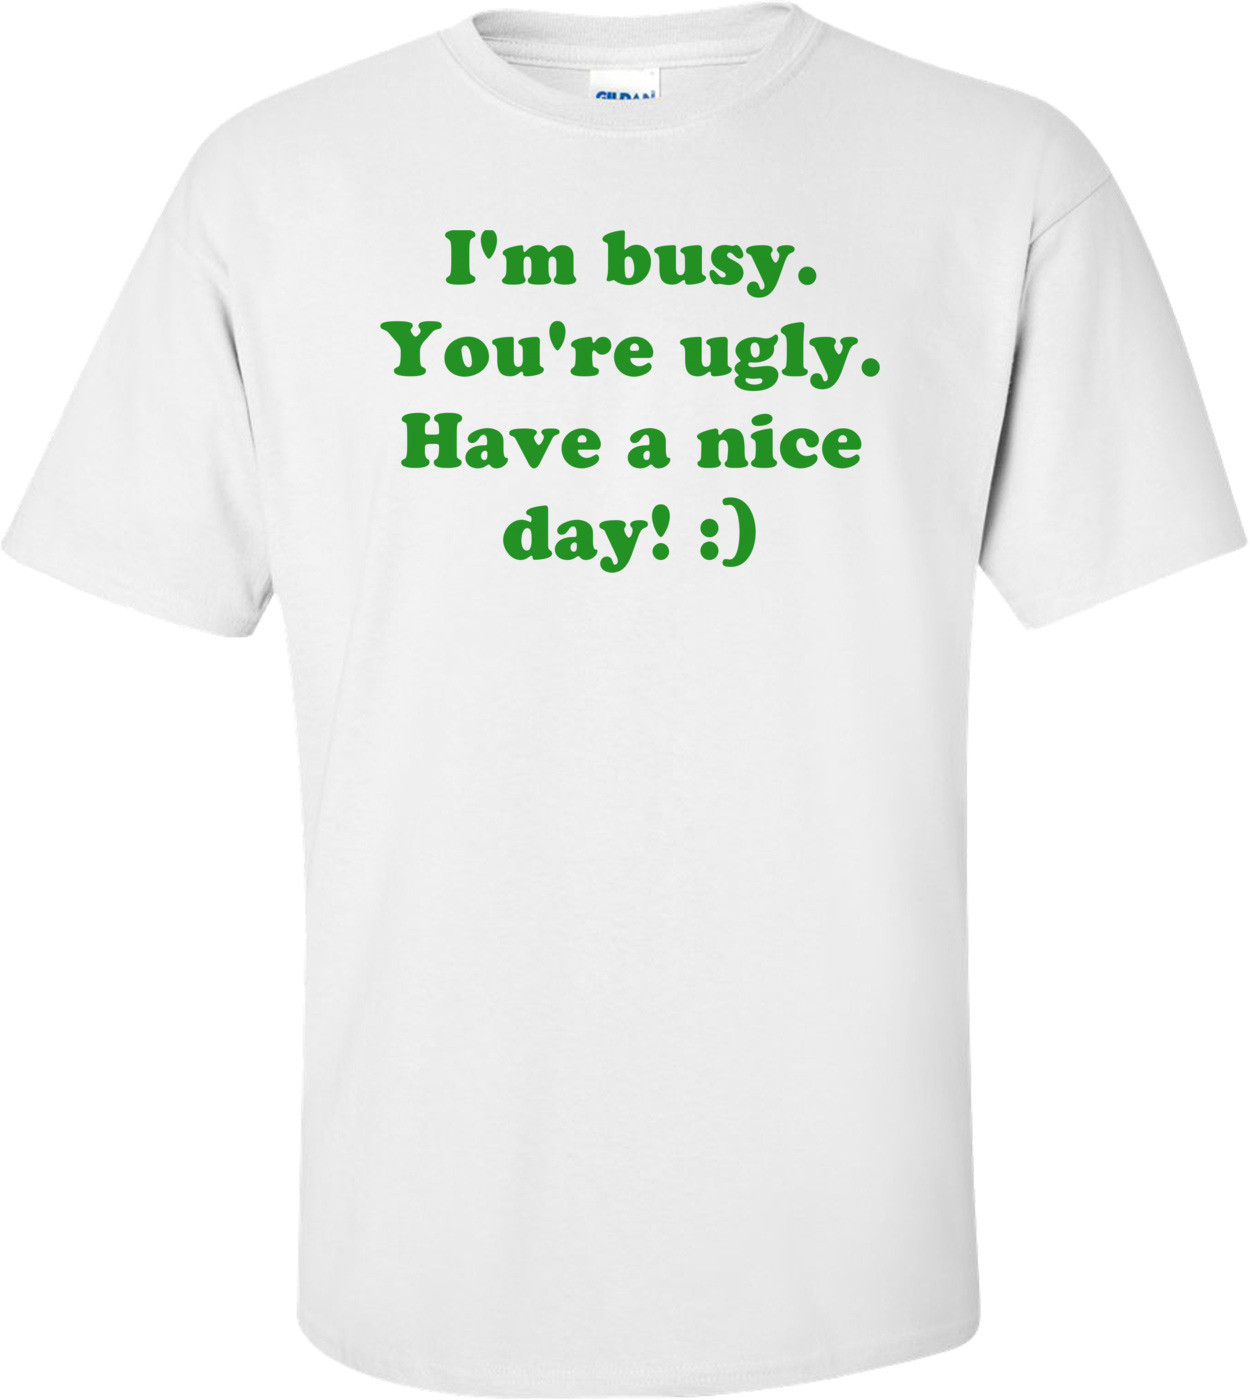 I'm busy. You're ugly. Have a nice day! :) Shirt